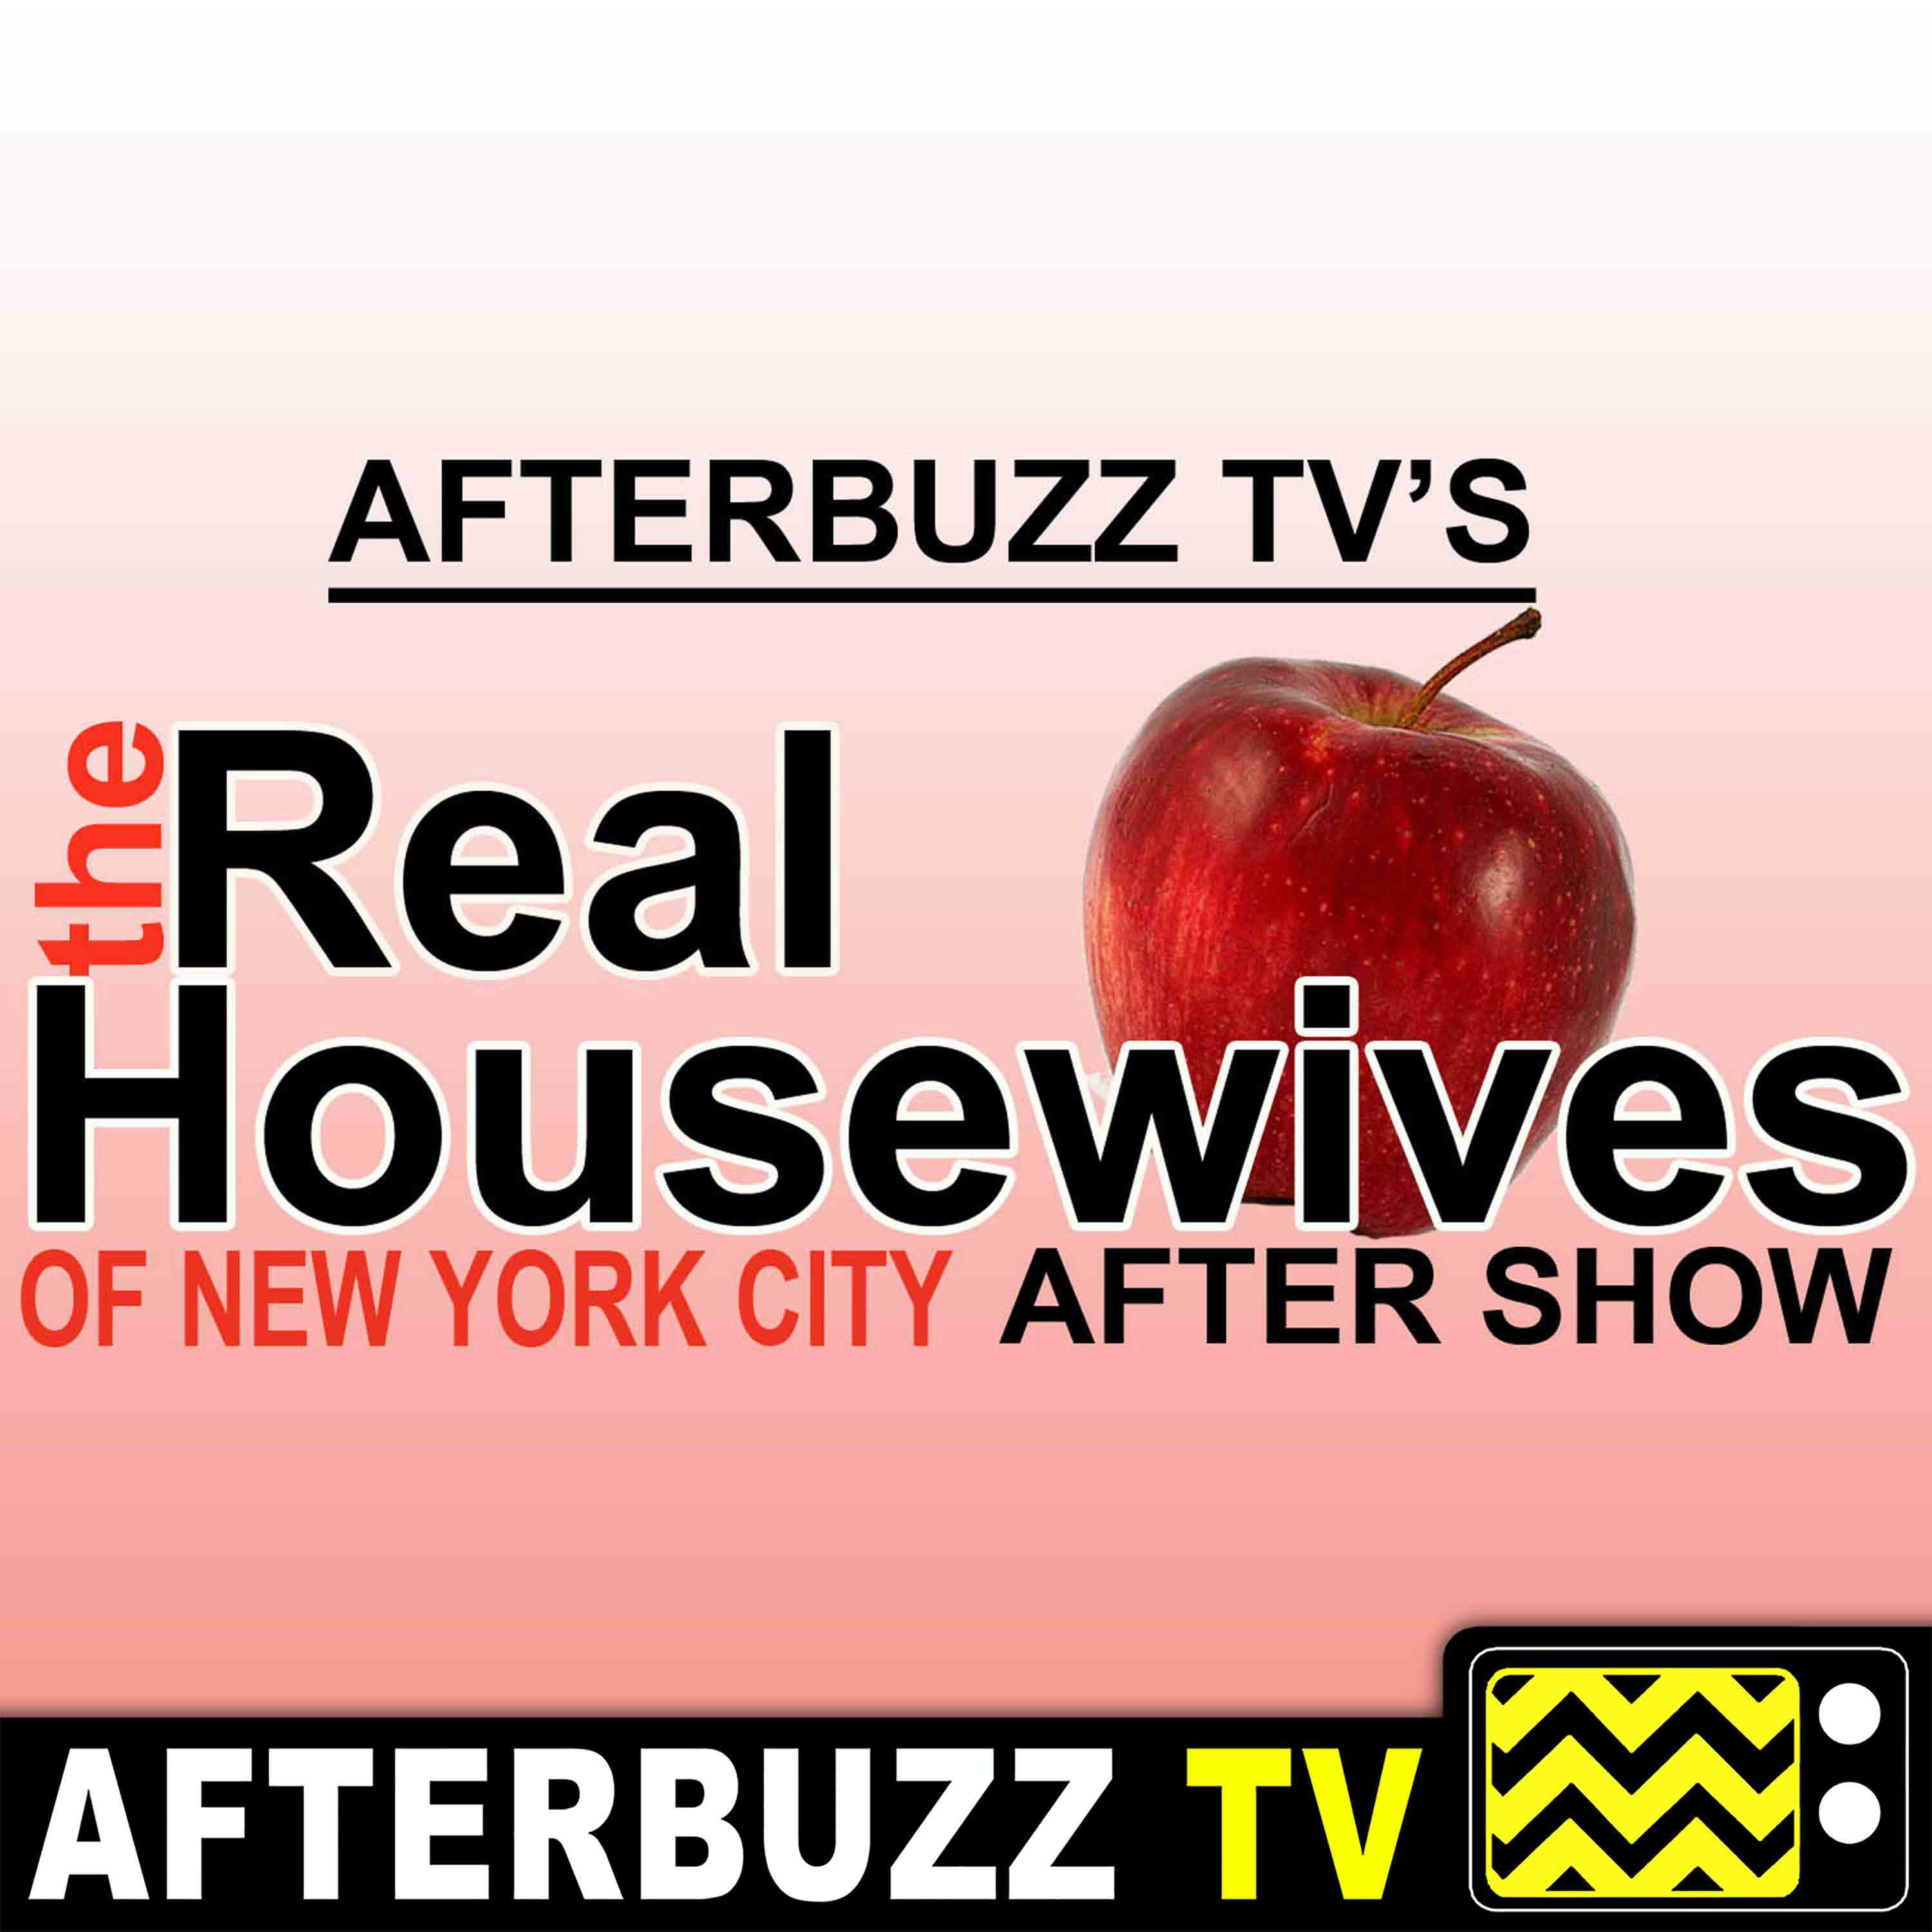 Real Housewives Of New York S12 E7 Recap & After Show: Dorita & Tinsdale Face-off